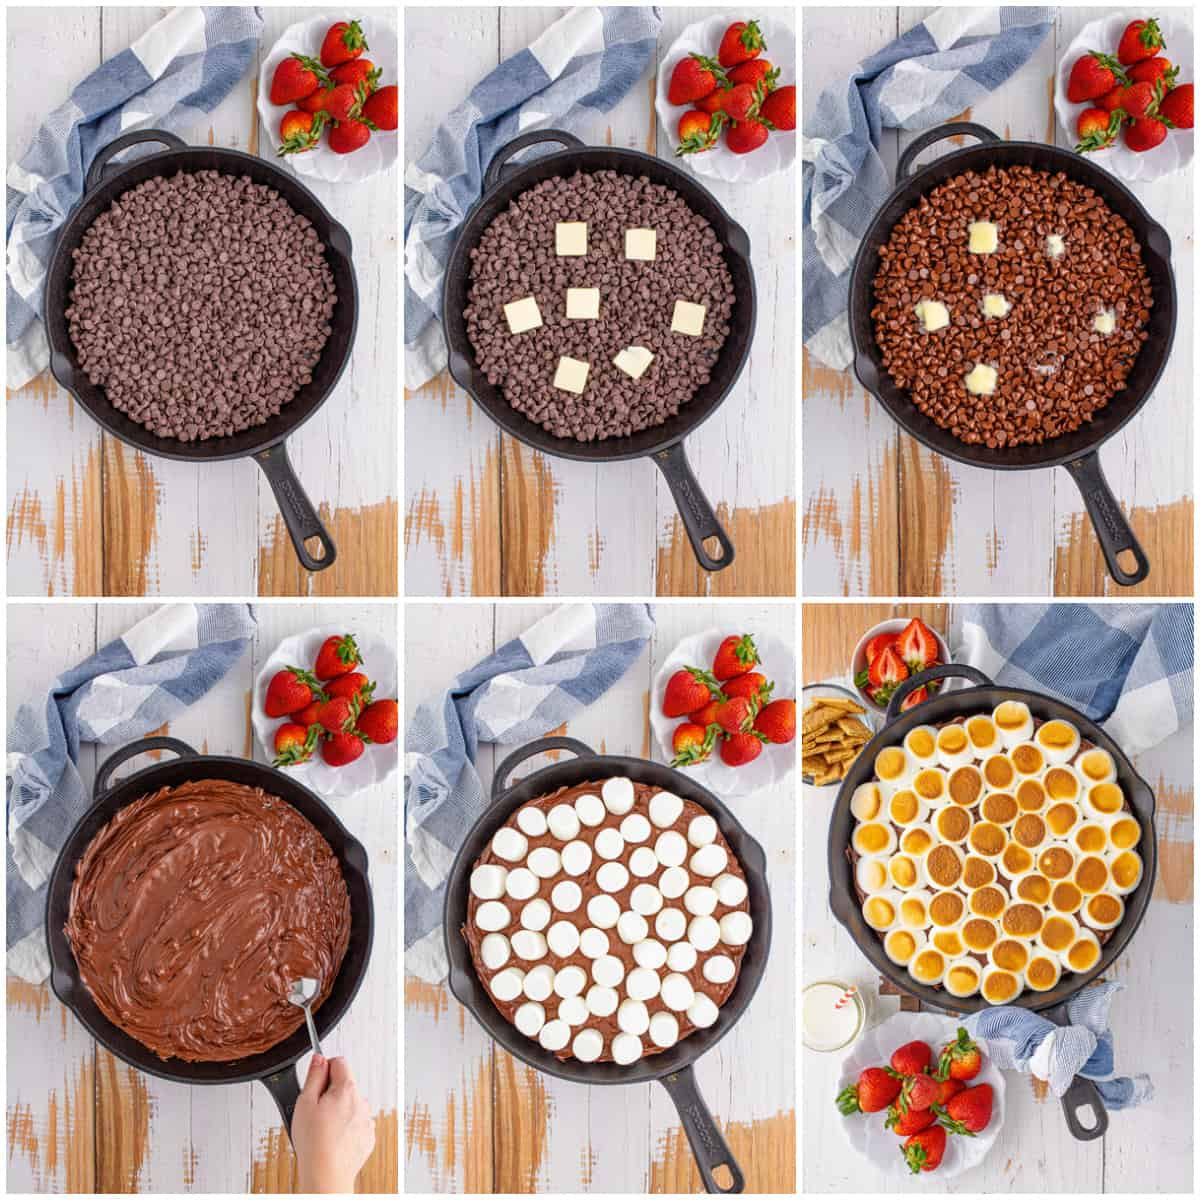 Step by step photos on how to make S'mores Dip